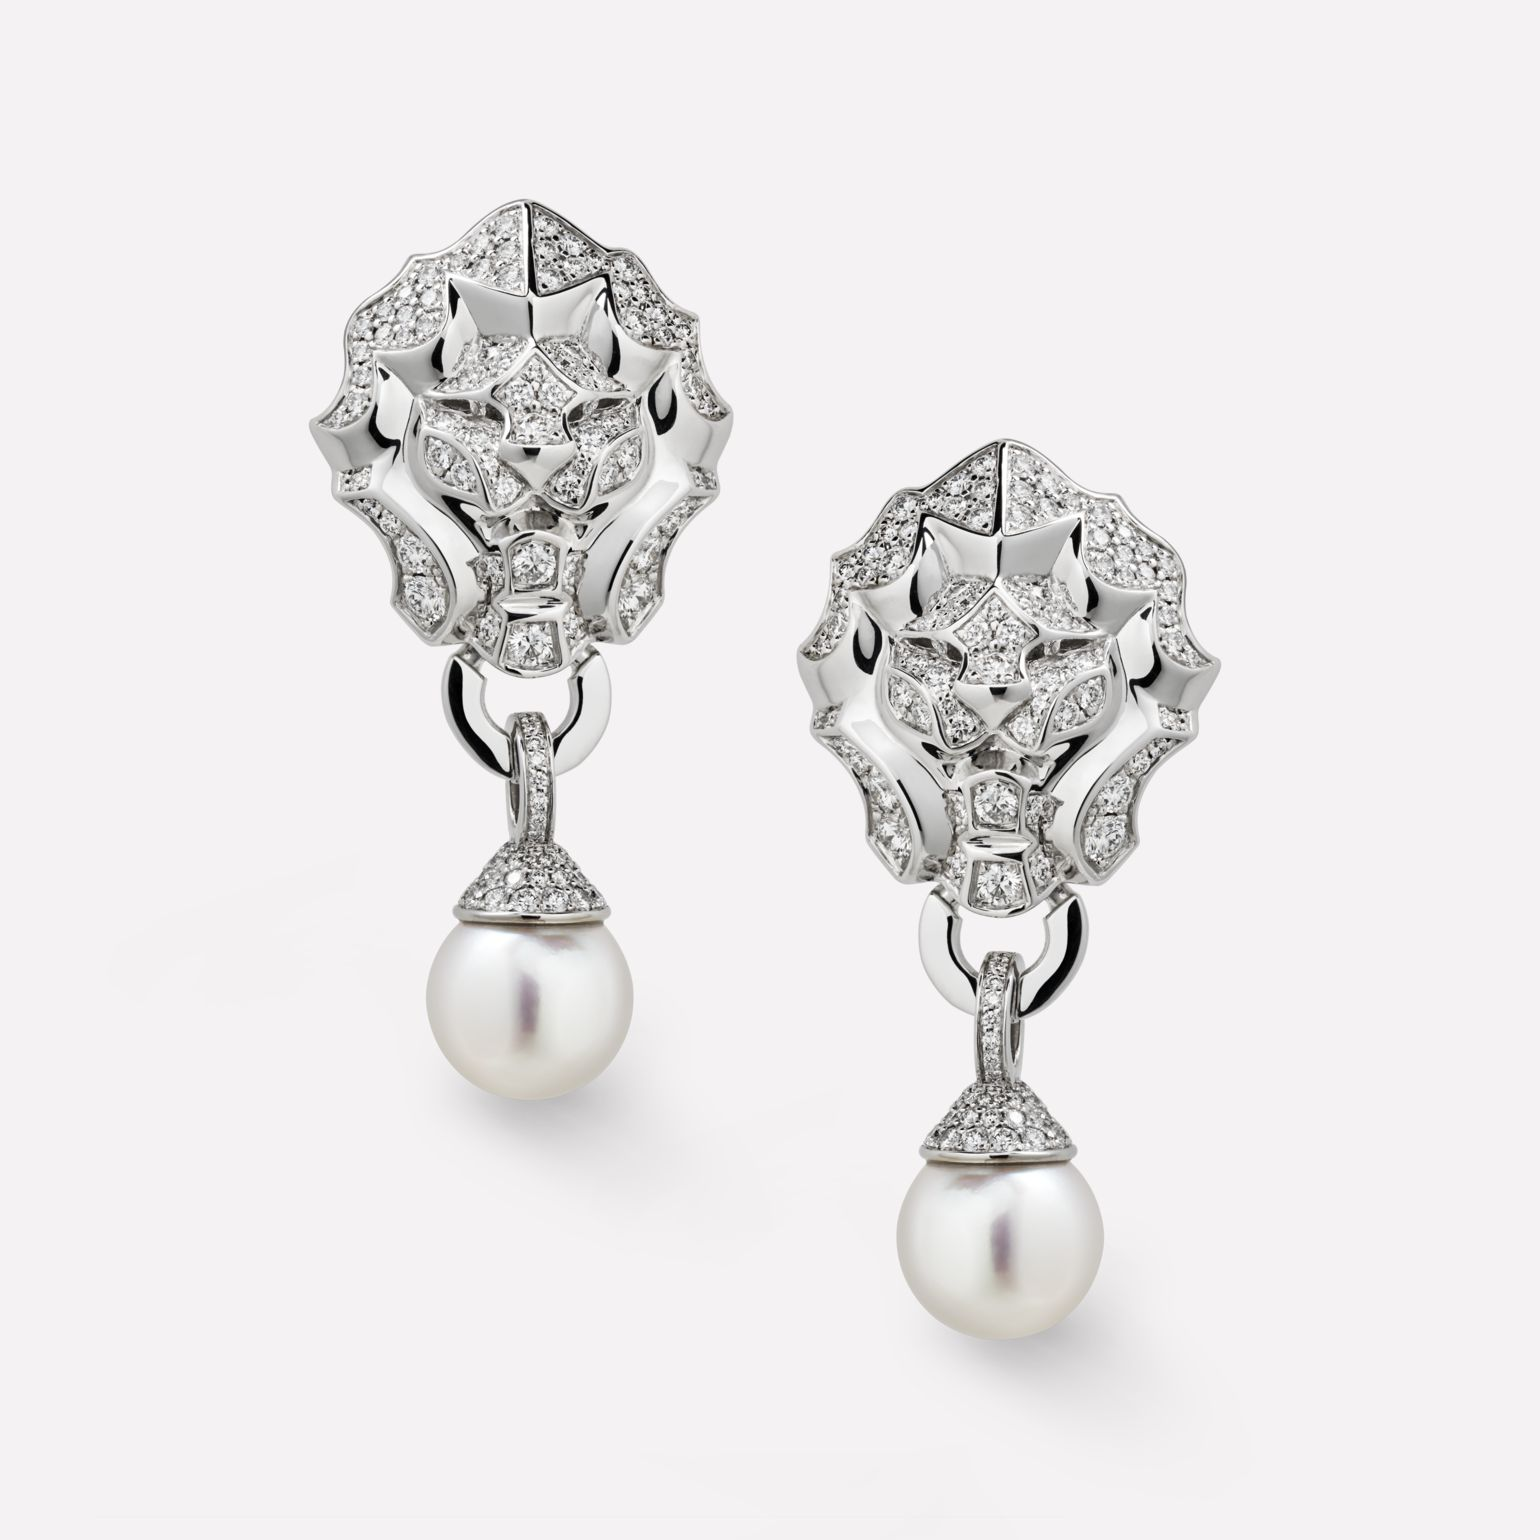 Sous le Signe du Lion earrings Lion earrings in 18K white gold, diamonds and cultured pearls